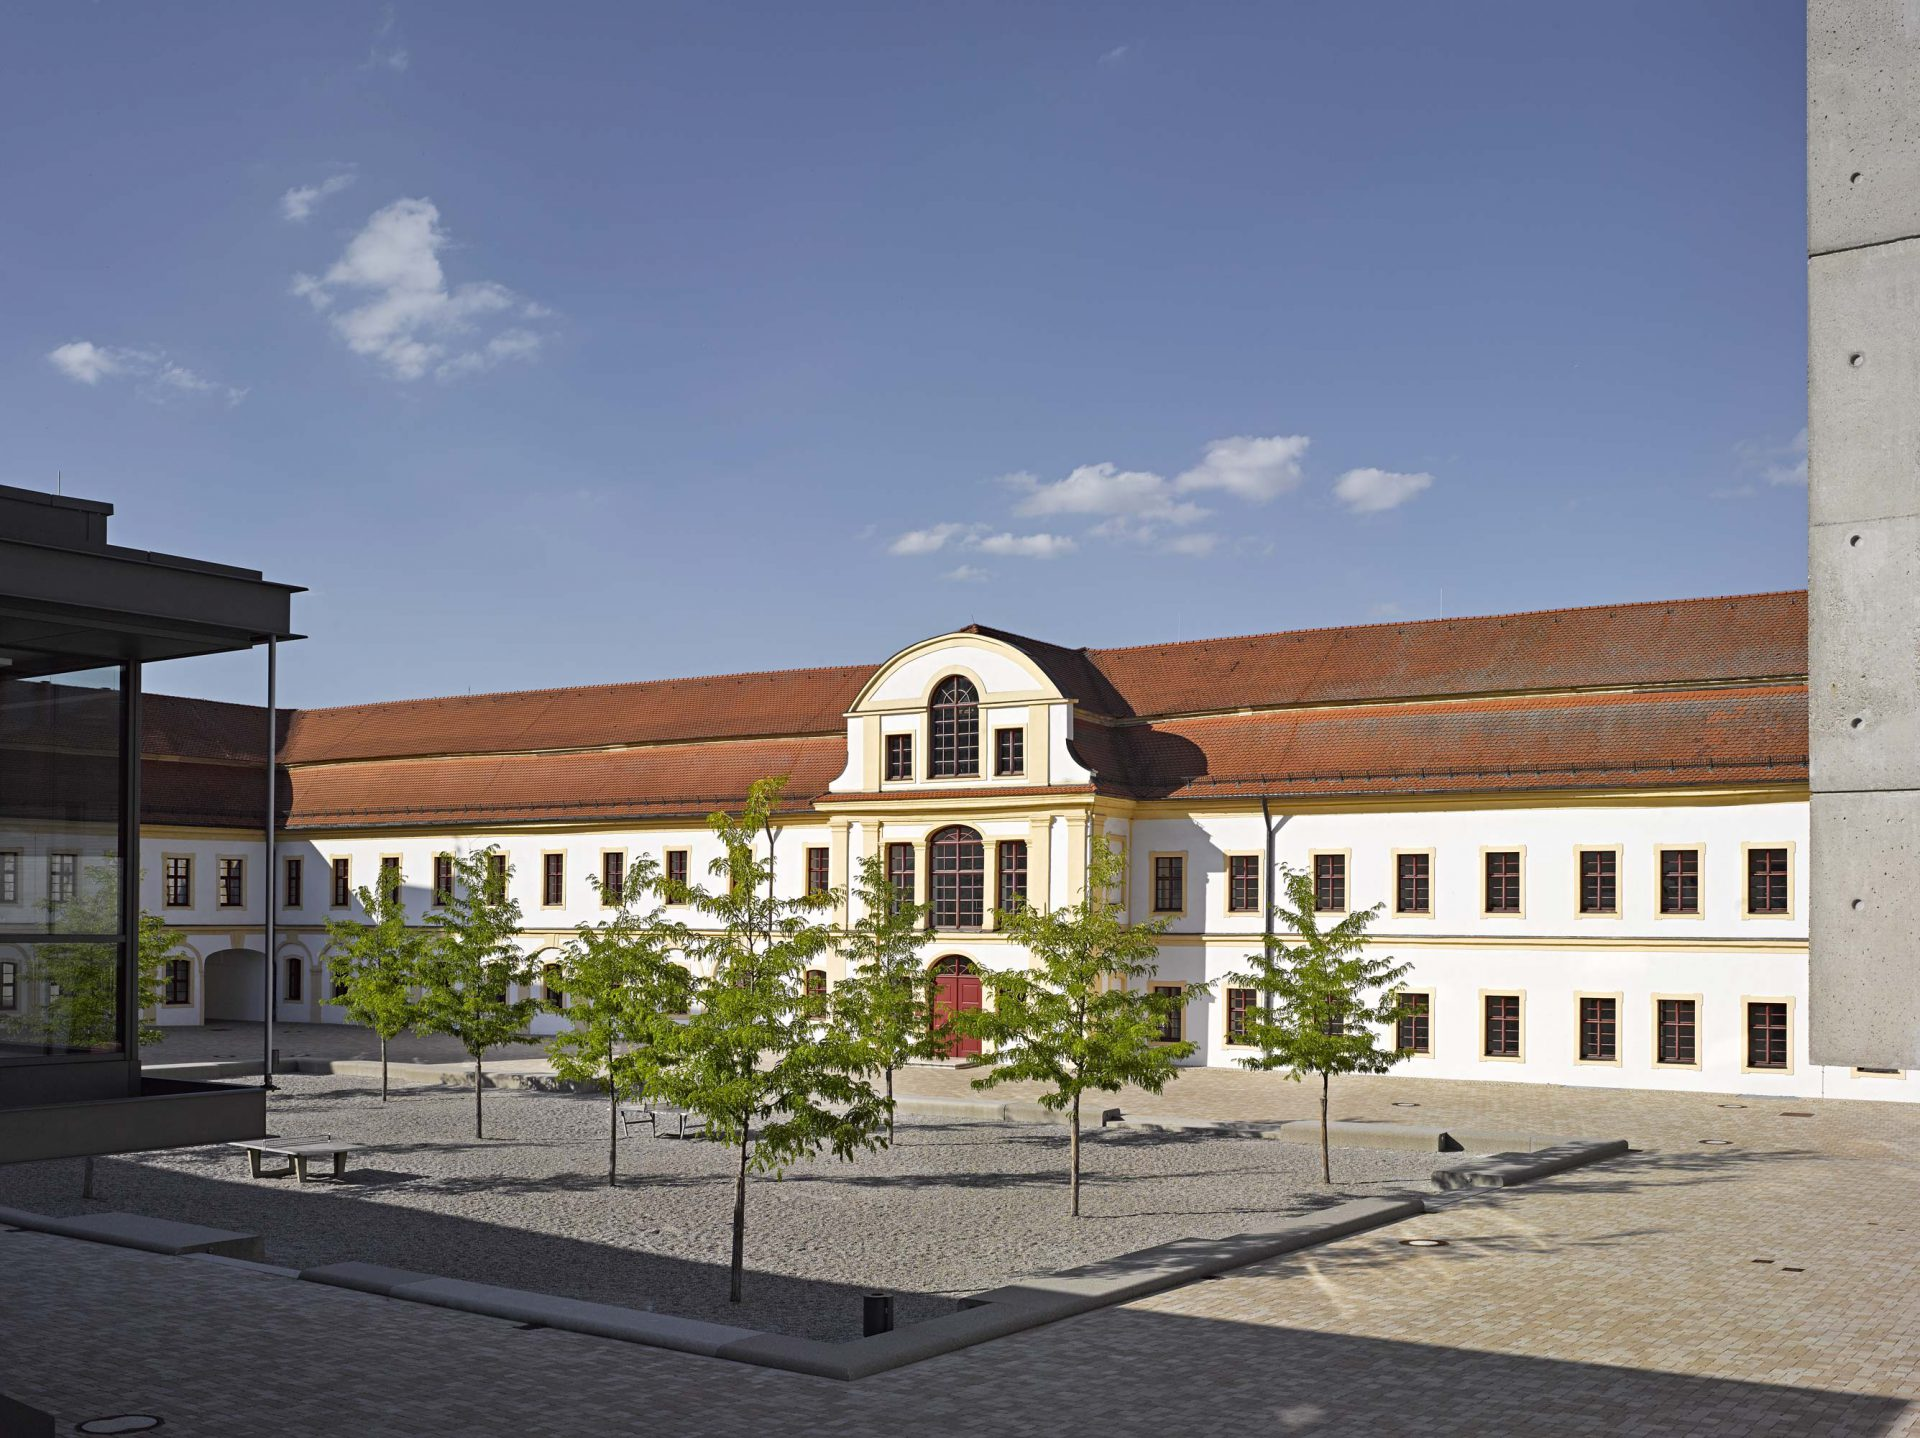 LAW-Kloster-Rebdorf-160719-0181-01